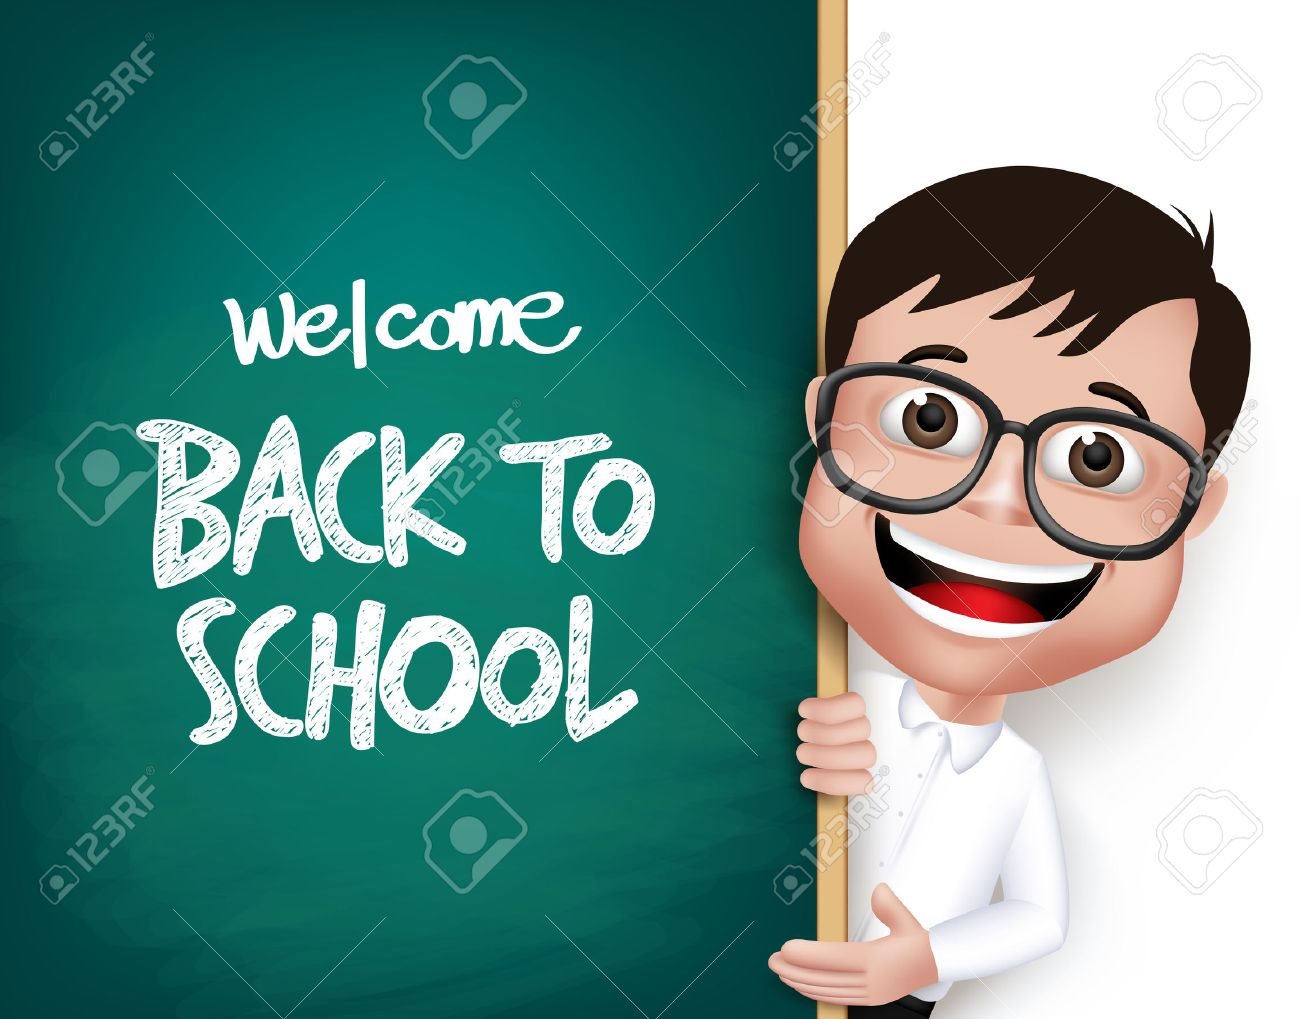 3D Realistic Nerd School Boy Student with Eyeglasses Happy Smiling Holding a Blackboard With Back to School Text Written Isolated in White Background. Vector Illustration - 43203055